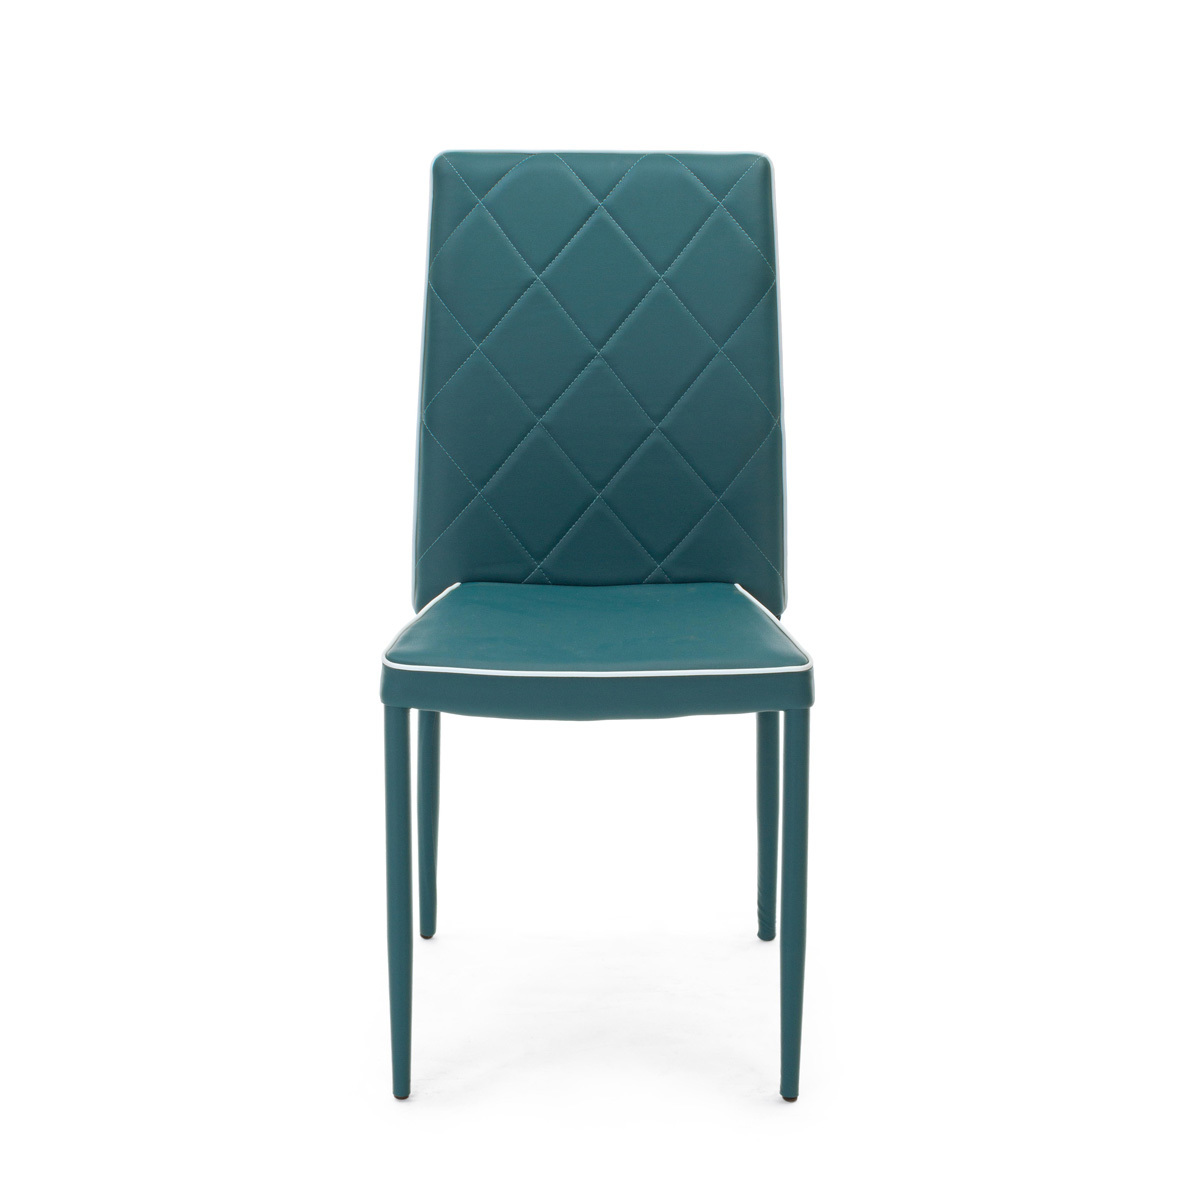 Photos 2: Bizzotto Chair covered in eco-leather - petroleum 0730785